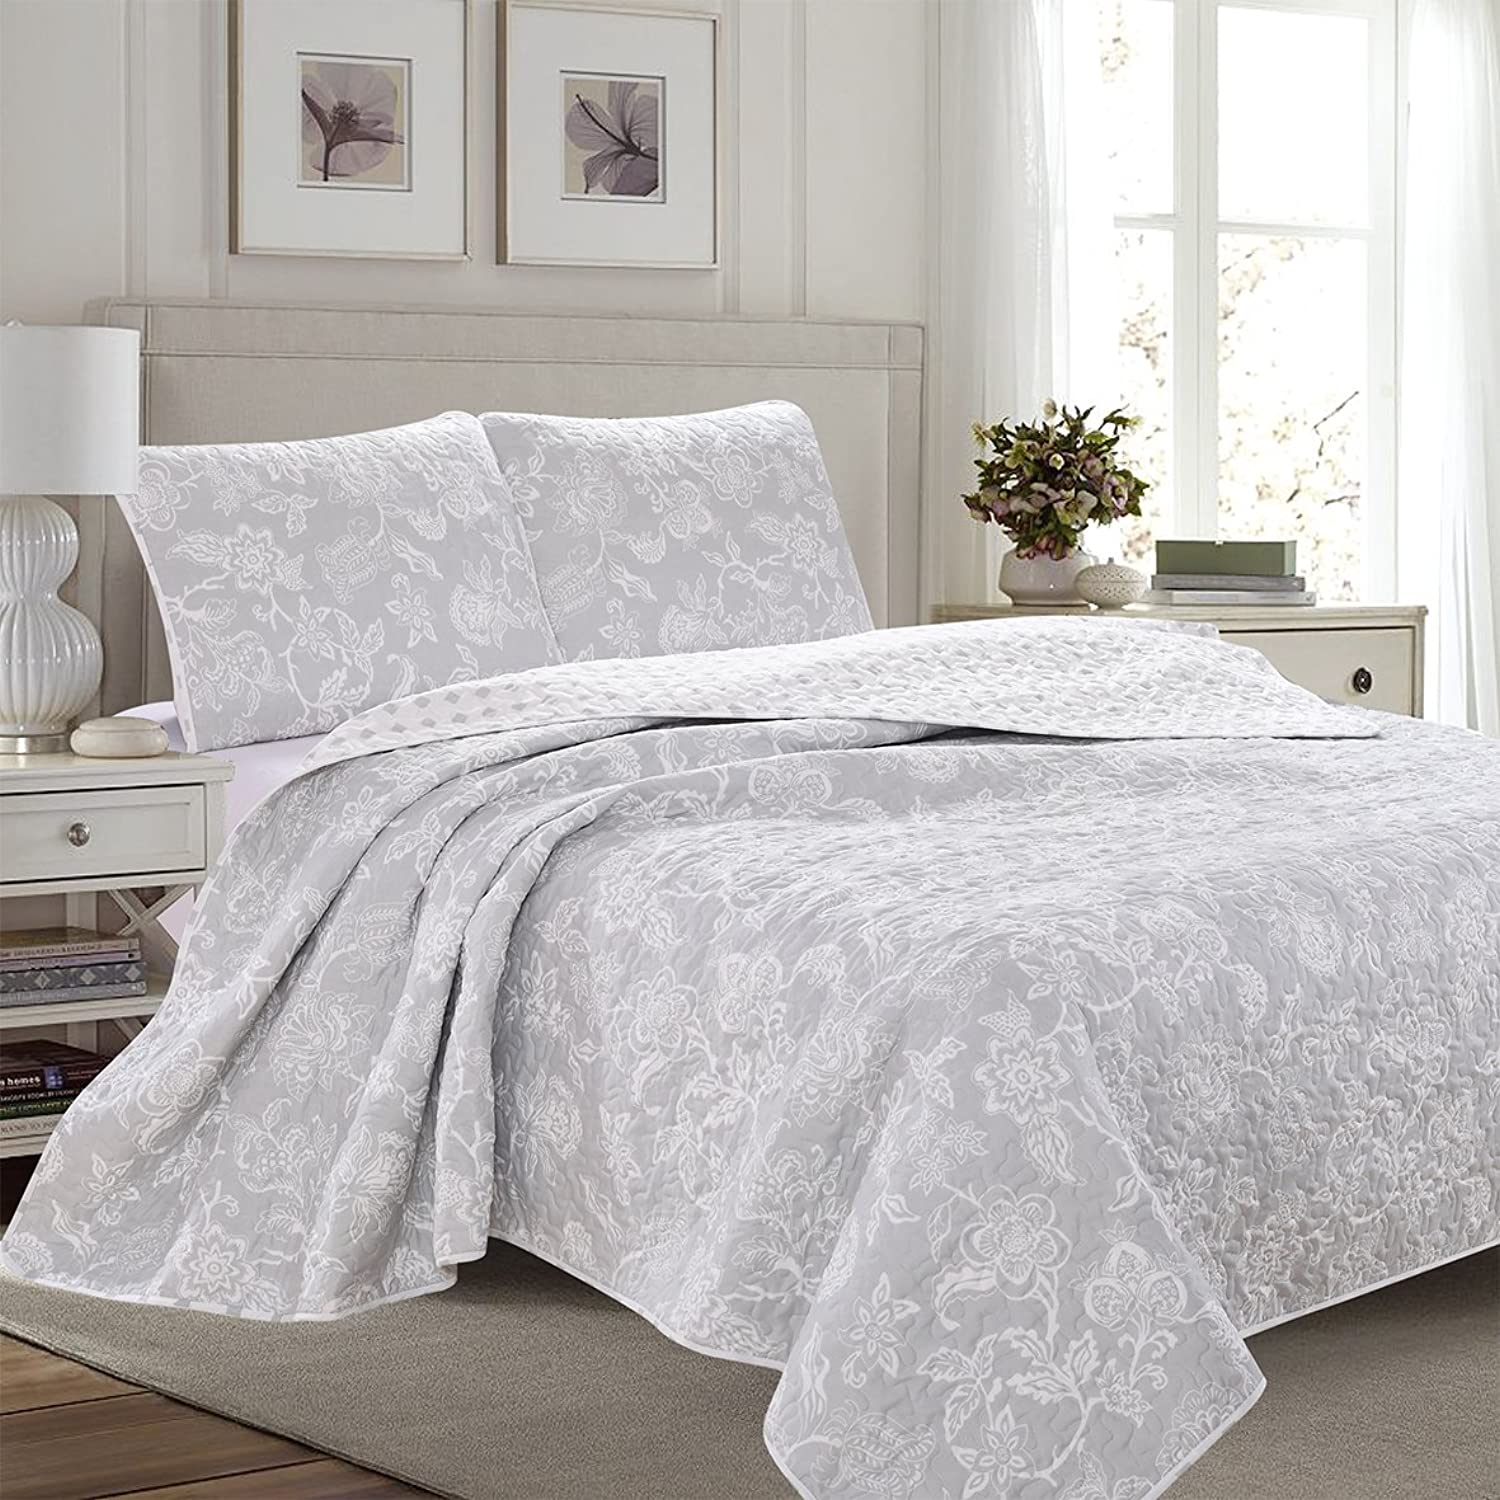 Great Bay Home 3-Piece Reversible Quilt Set with Shams. All-Season Bedspread with Floral Print Pattern in Contemporary colors. Emma Collection Brand. (King, Grey)